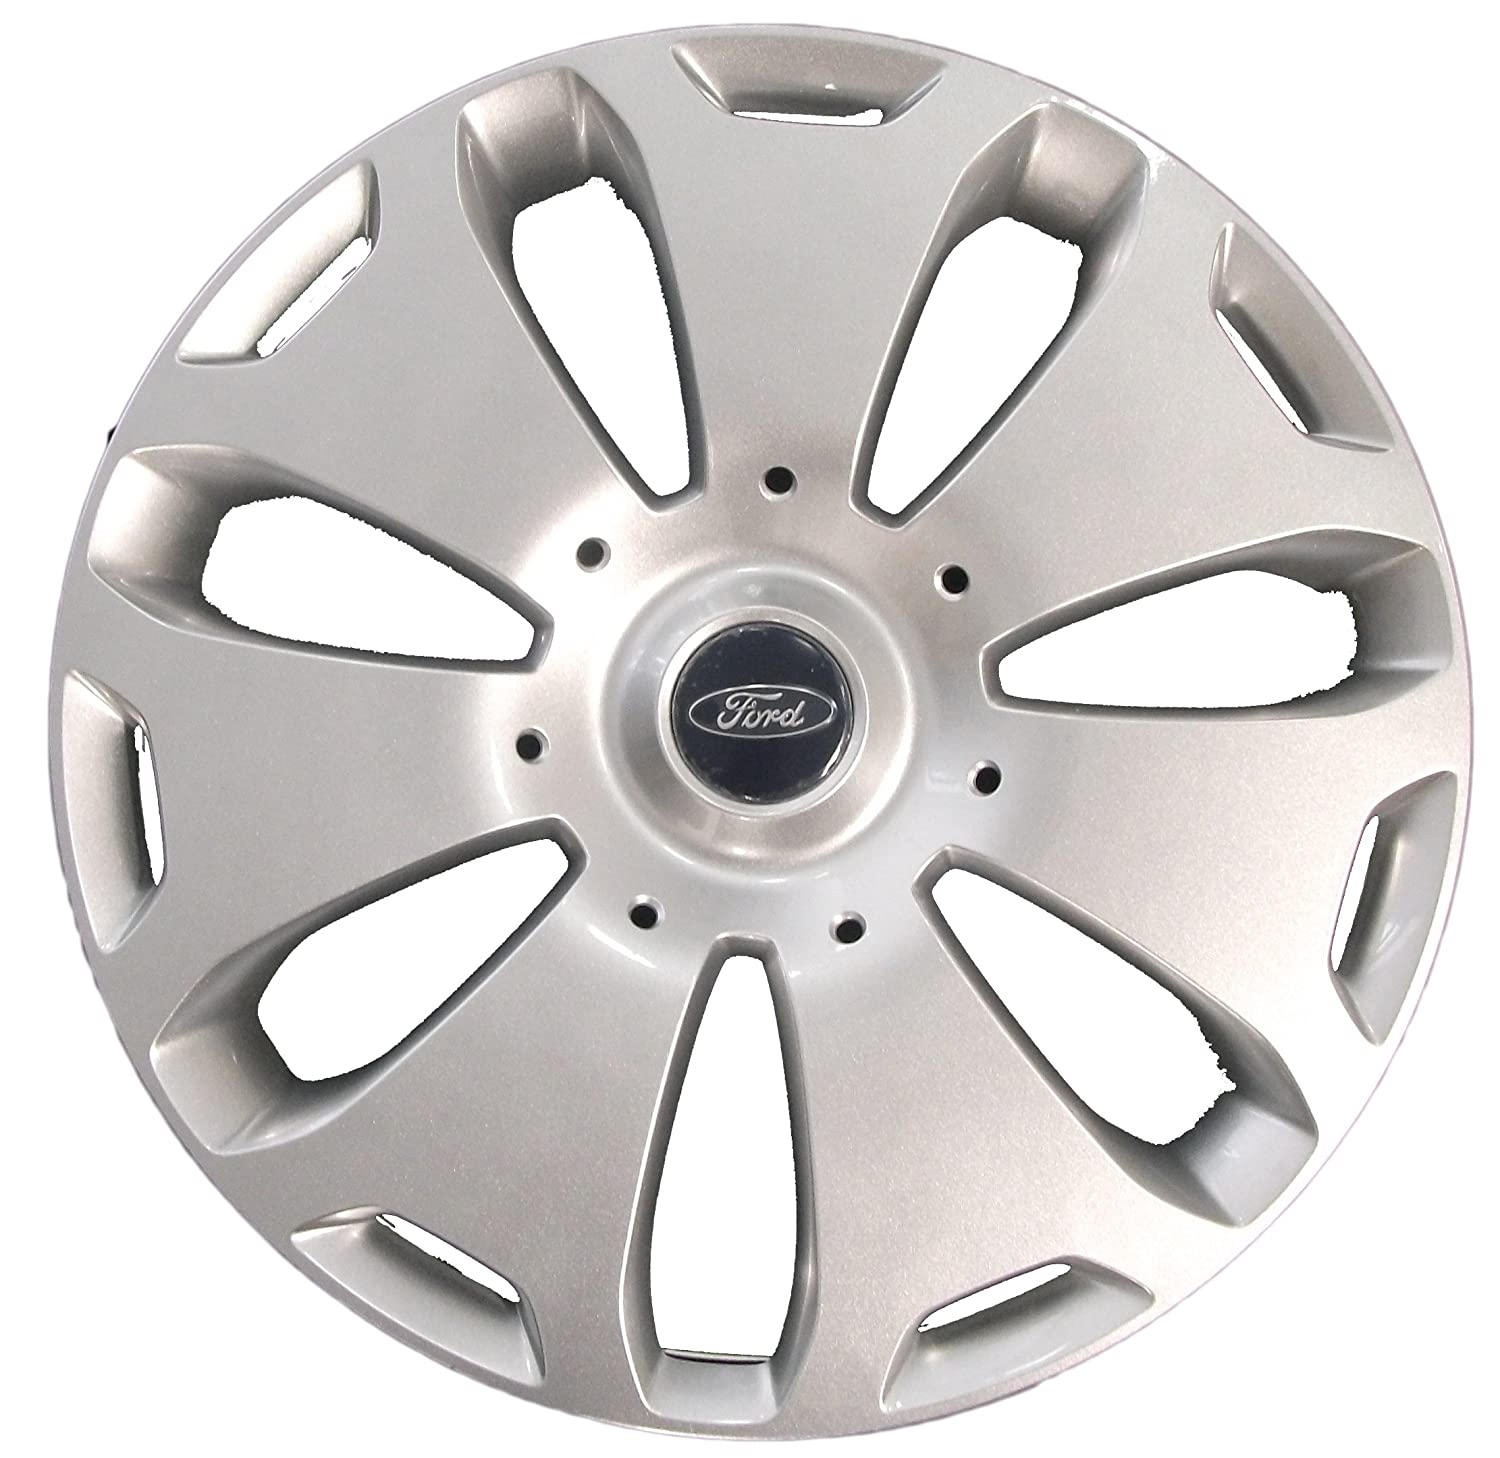 Ford 1702598 Mondeo 16-inch Single Wheel Trim for 2007-10 (1 Piece